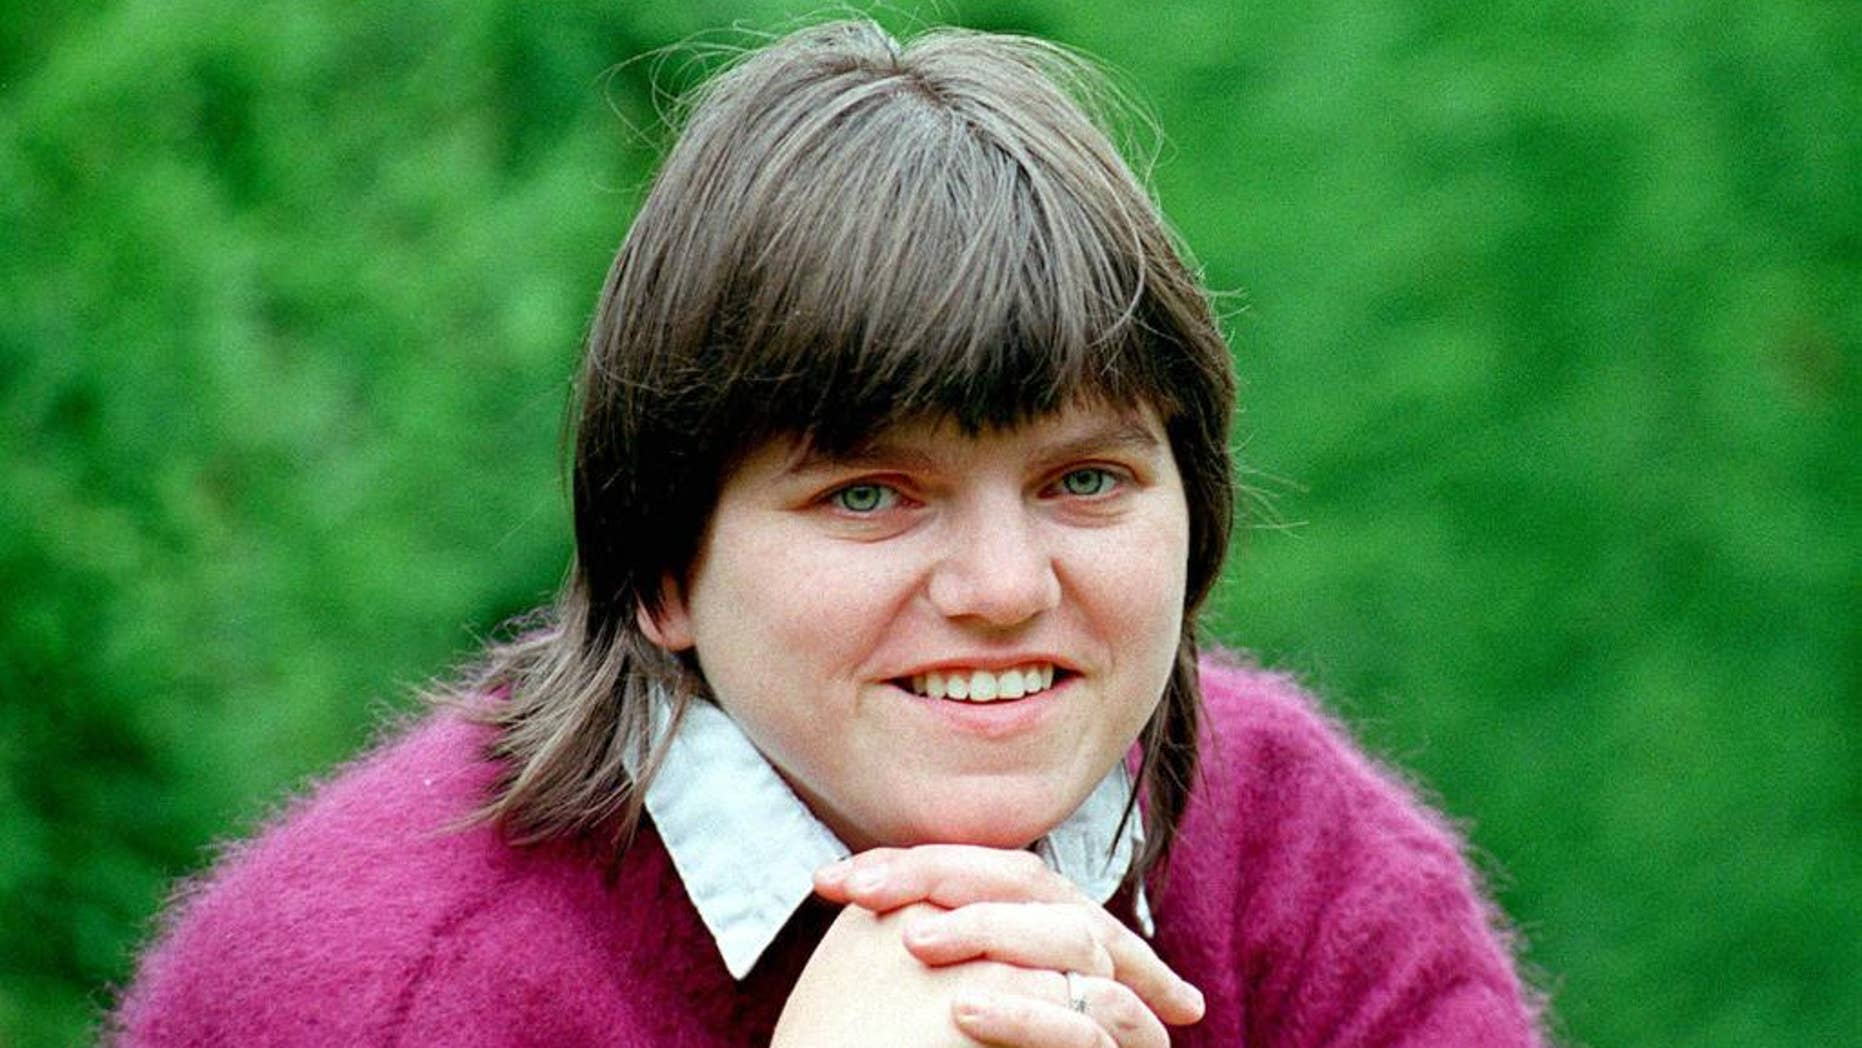 FILE - This June 14, 1997 file photo shows Jill Saward who has died aged 51. Jill Saward, a survivor of rape who became a powerful British campaigner against sexual violence, died Thursday Jan. 5, 2017 in central England, after suffering a stroke, Saward's family said. (PA via AP, File)